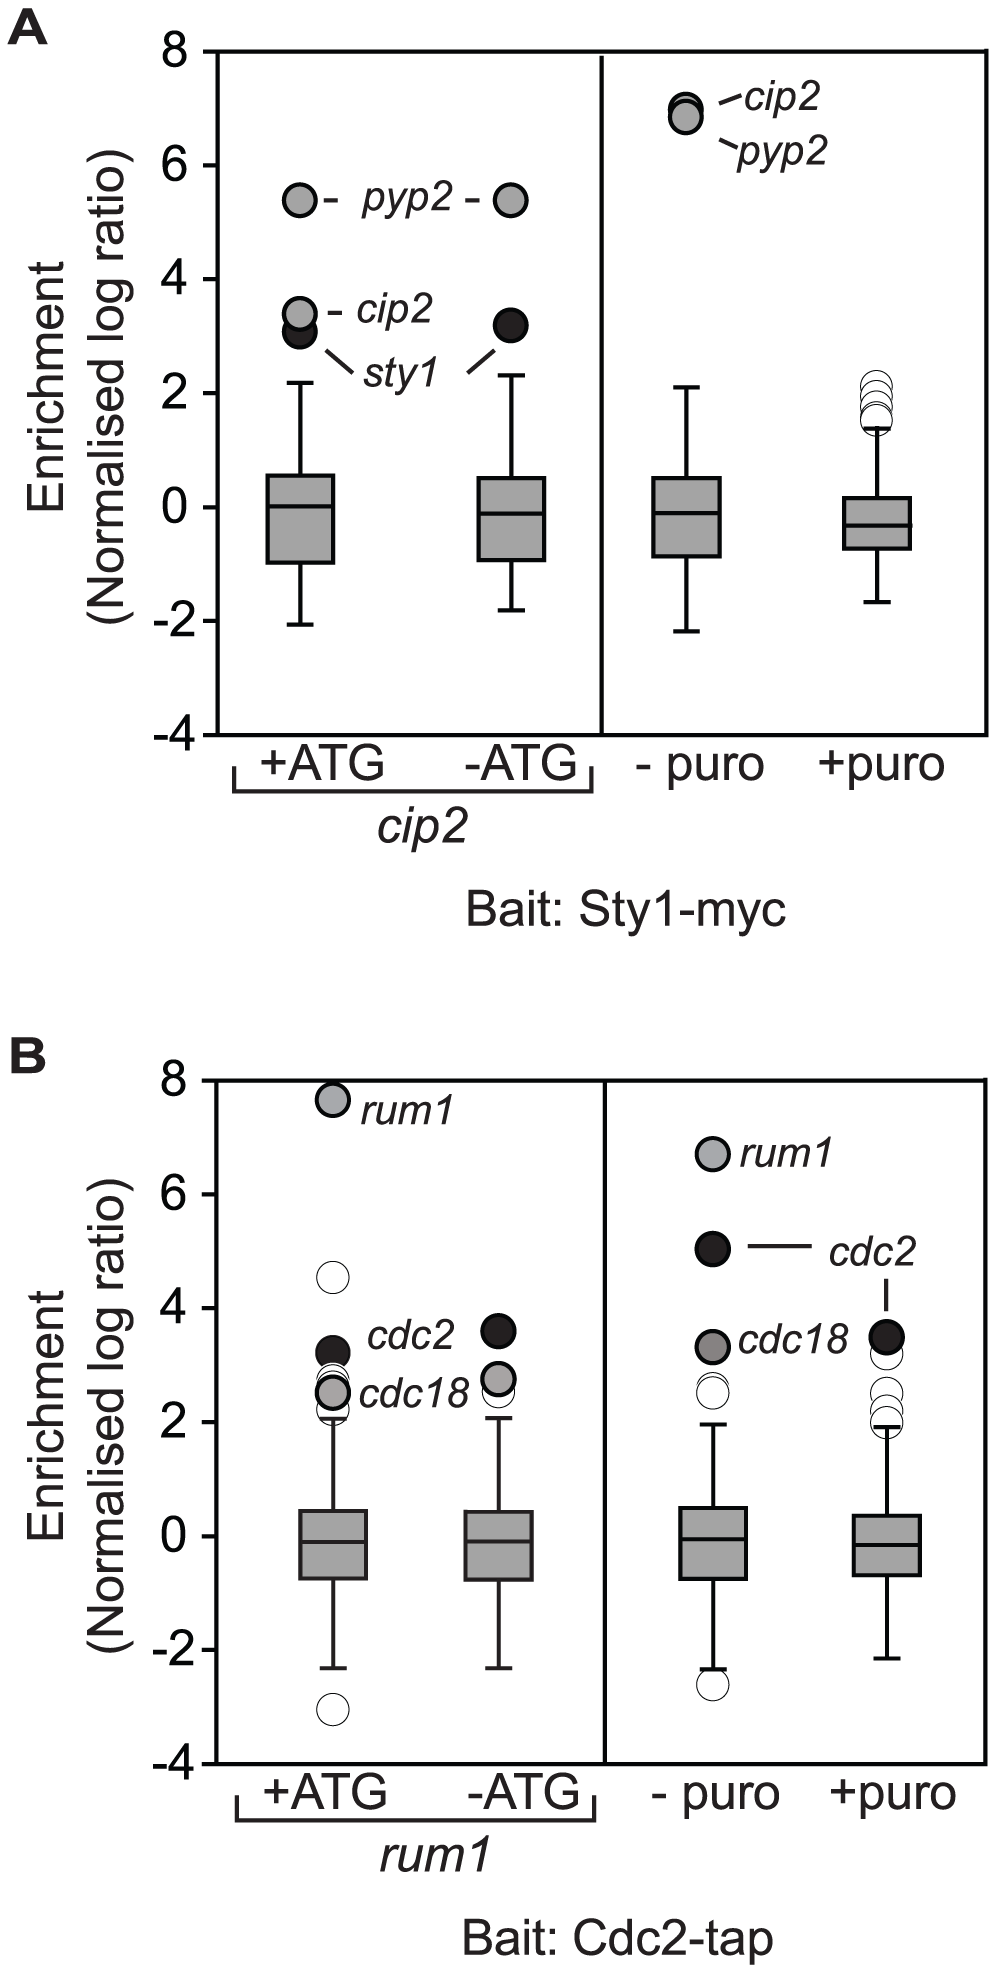 Cotranslational association of Cdc2p-Rum1p and Sty1p-Cip2p.